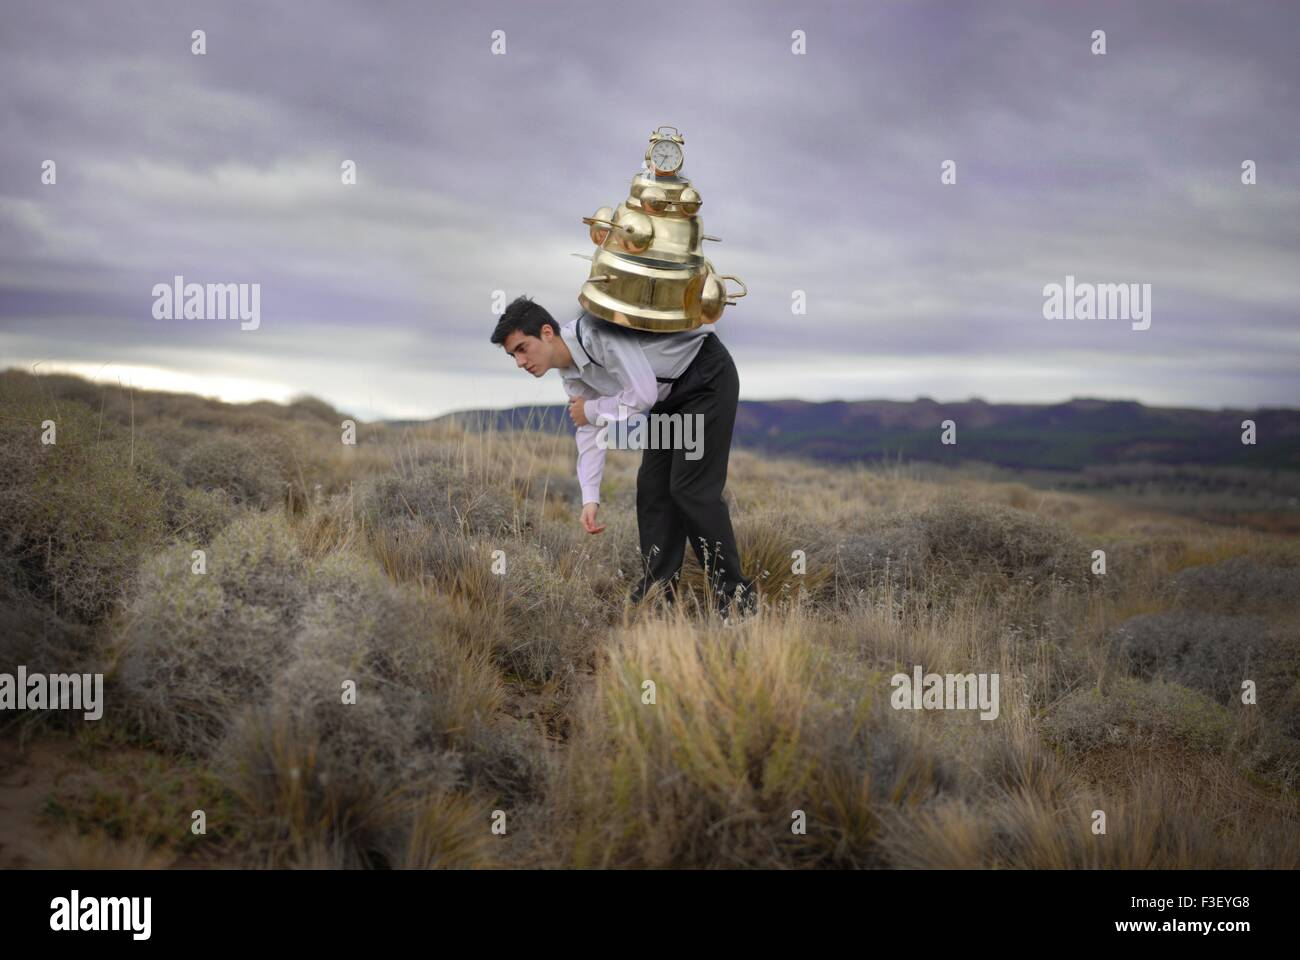 Conceptual boy man supporting the weight of time on his back big clocks on his back stormy sky sadness feeling old - Stock Image